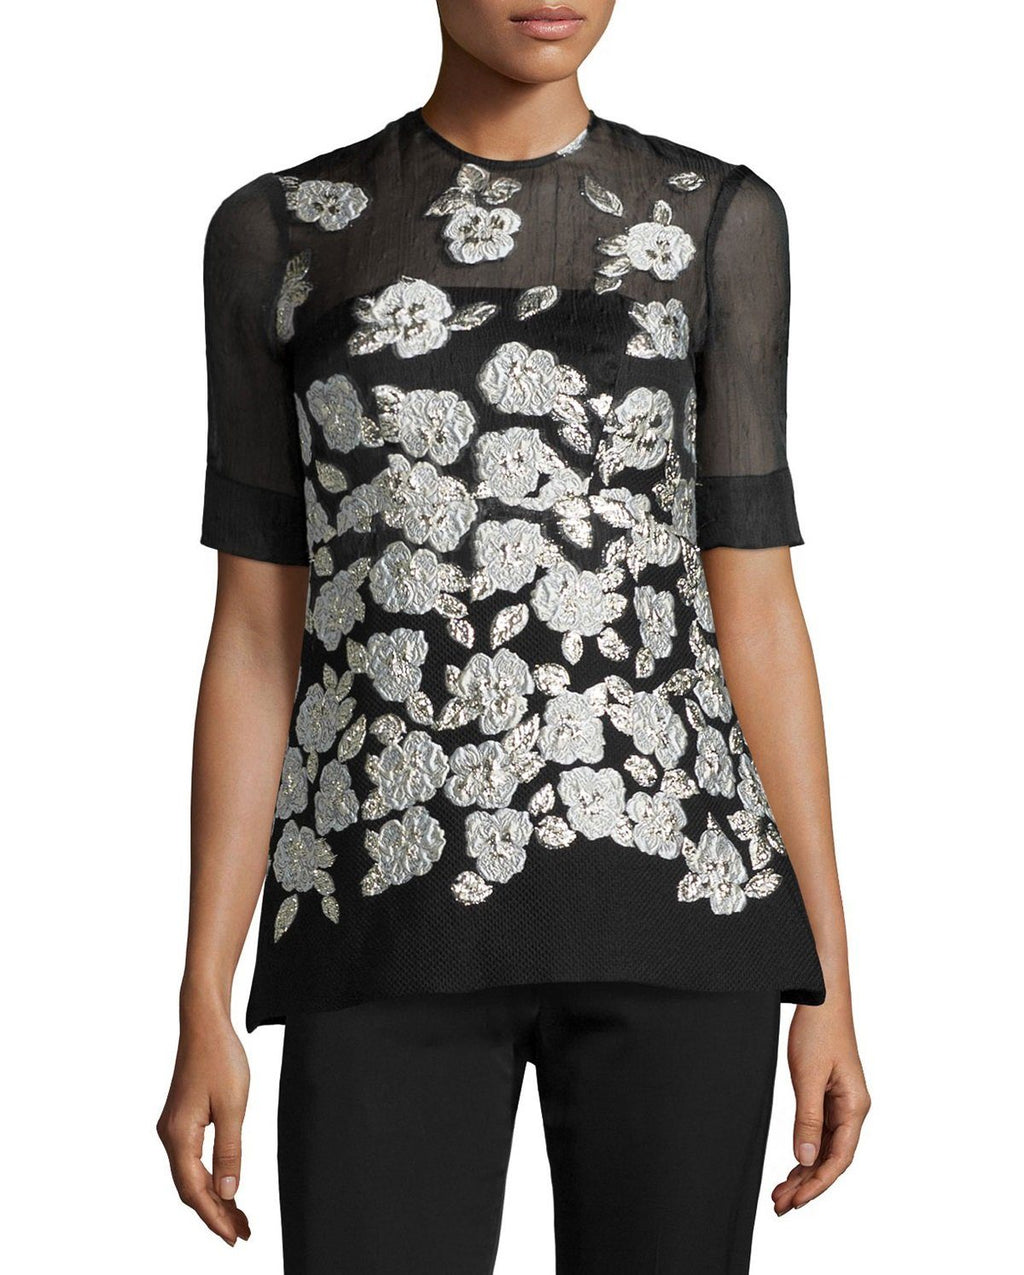 Lela Rose Metallic Floral-Embroidered Blouse, Black